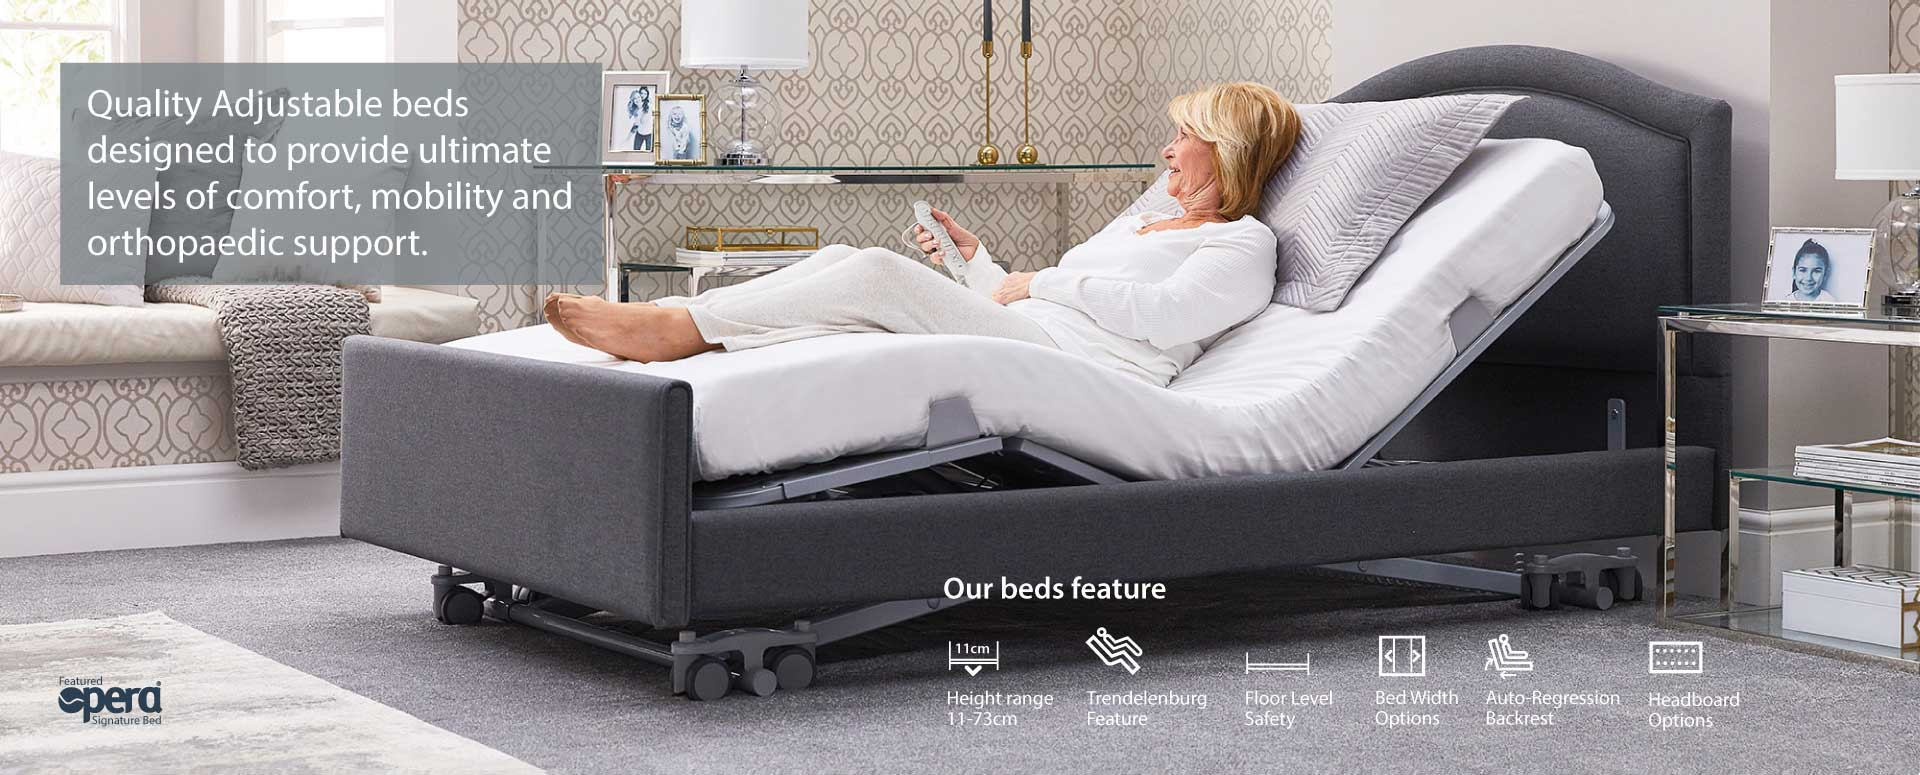 Quality adjustable beds designed to provide ultimate levels of comfort, mobility amd orthopaedic support.